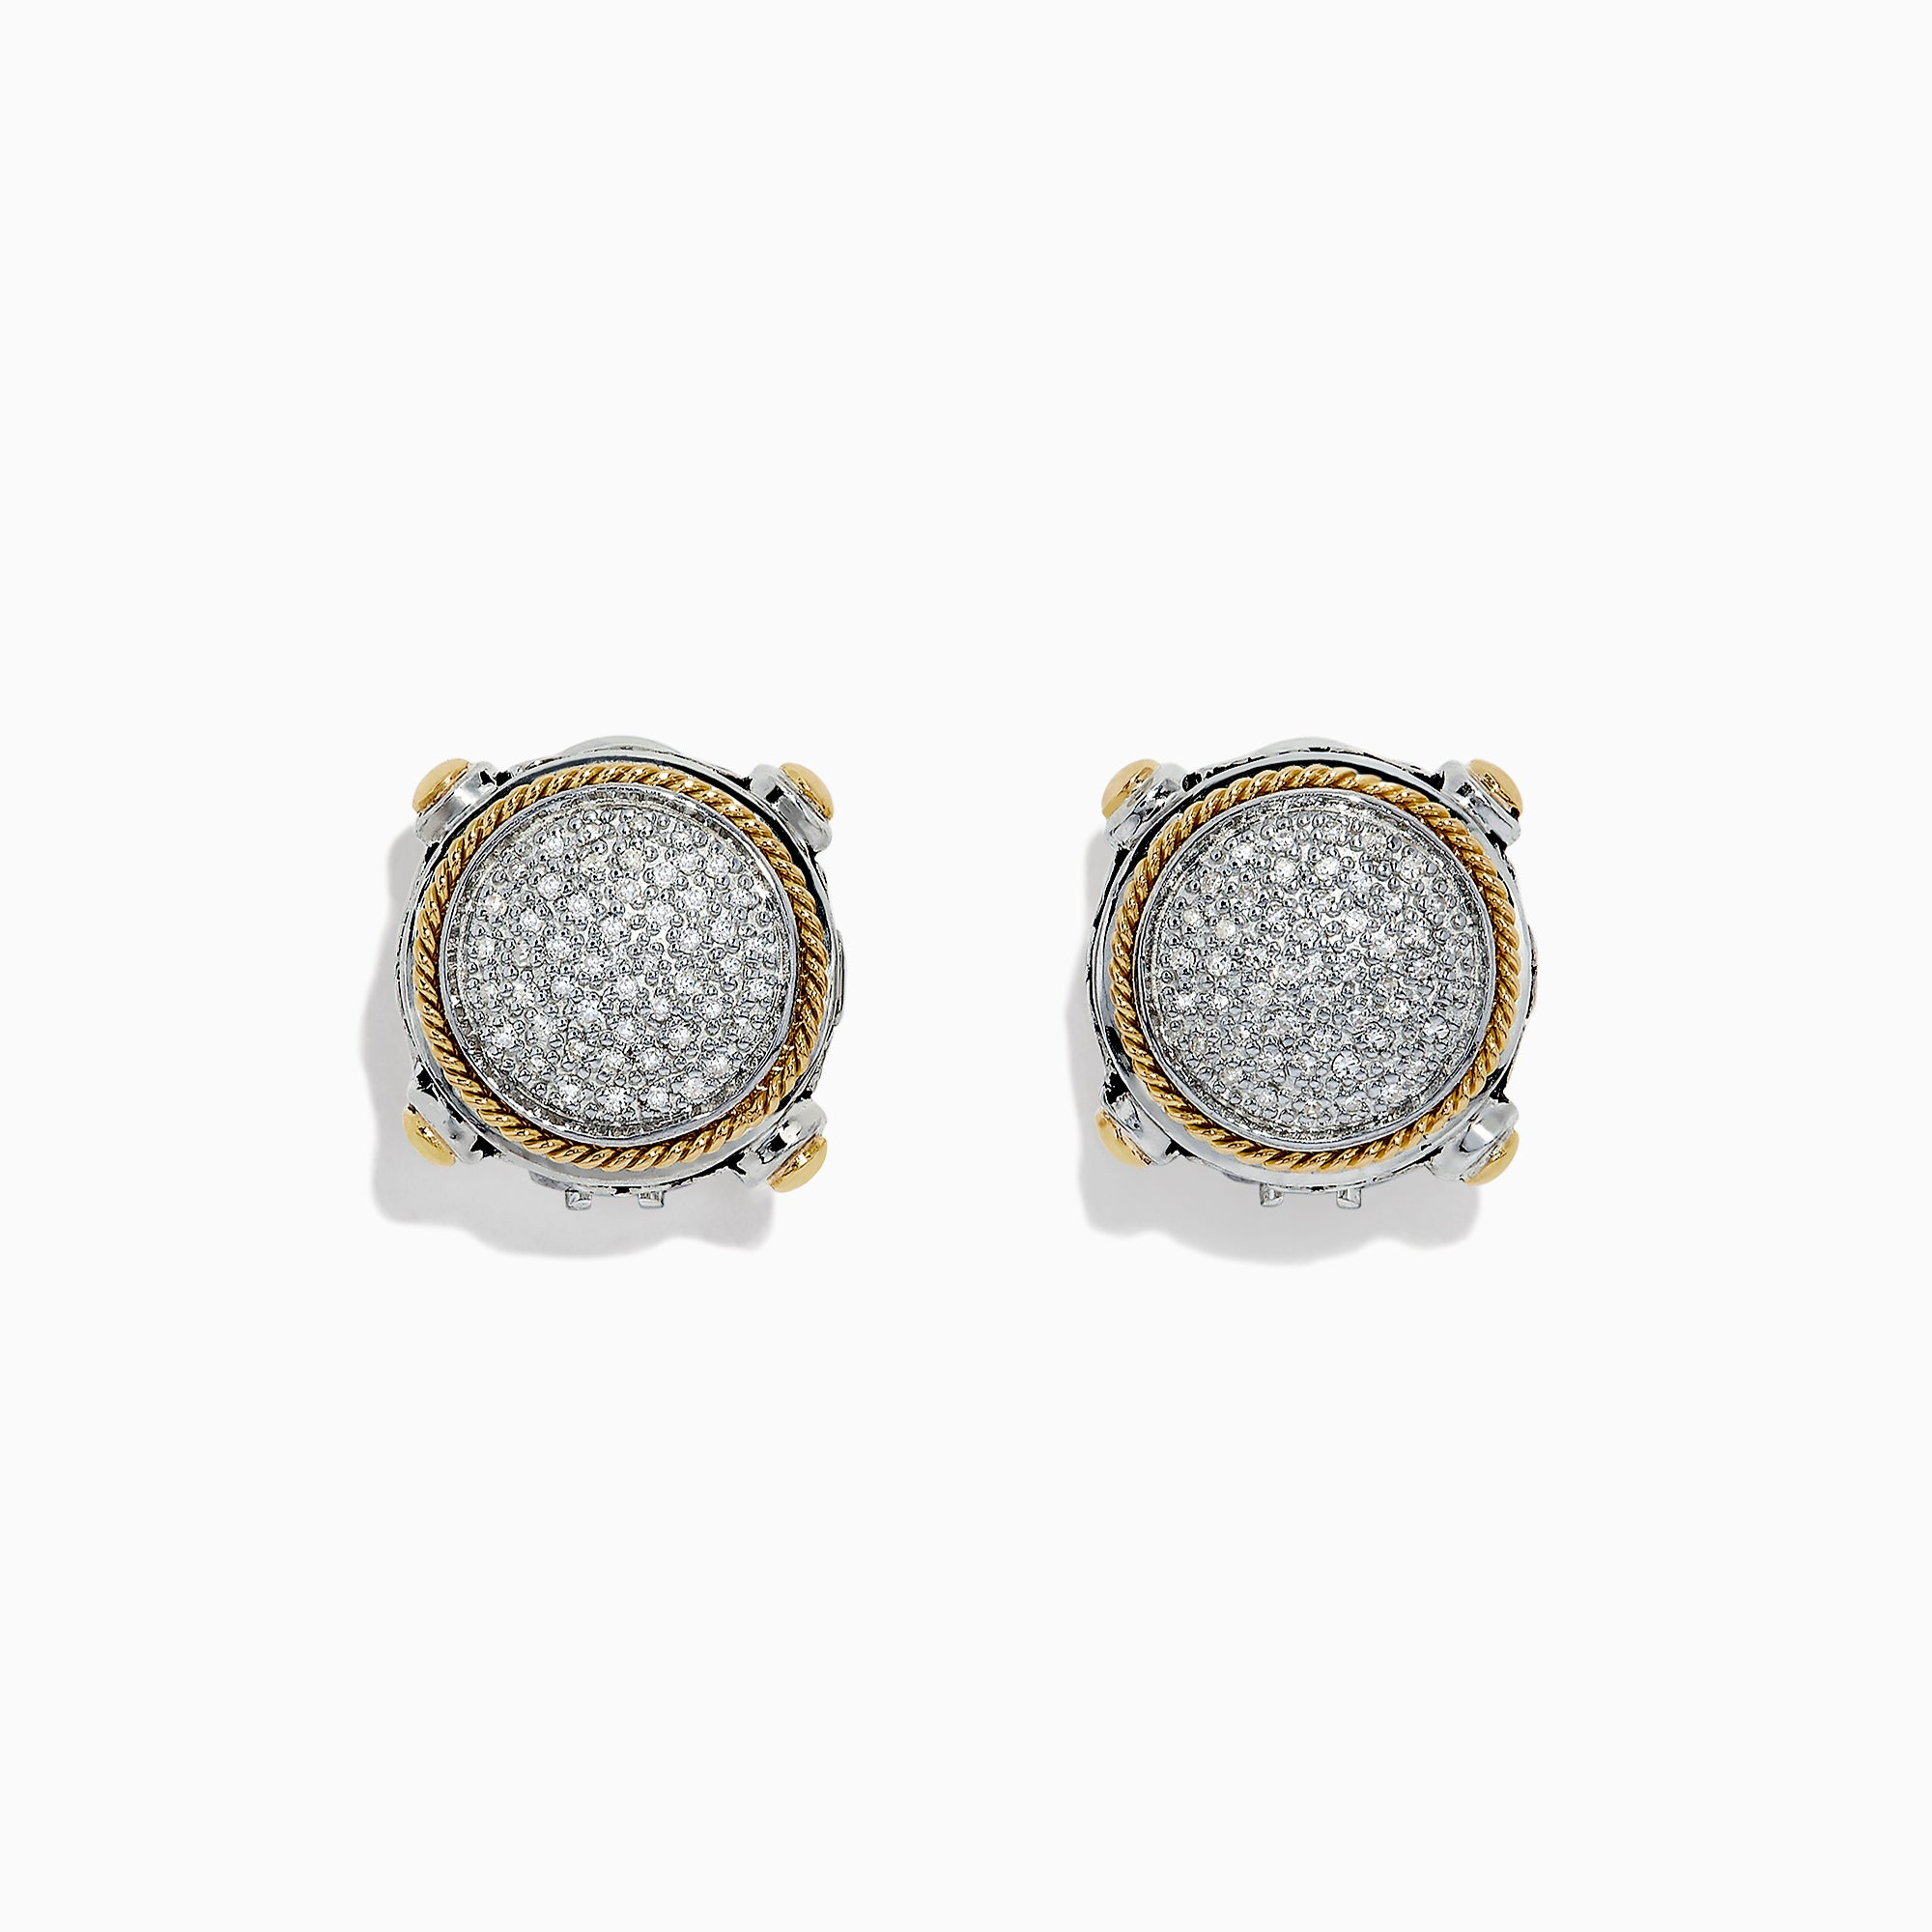 Effy 925 Sterling Silver & 18K Gold Diamond Earrings, 0.29 TCW